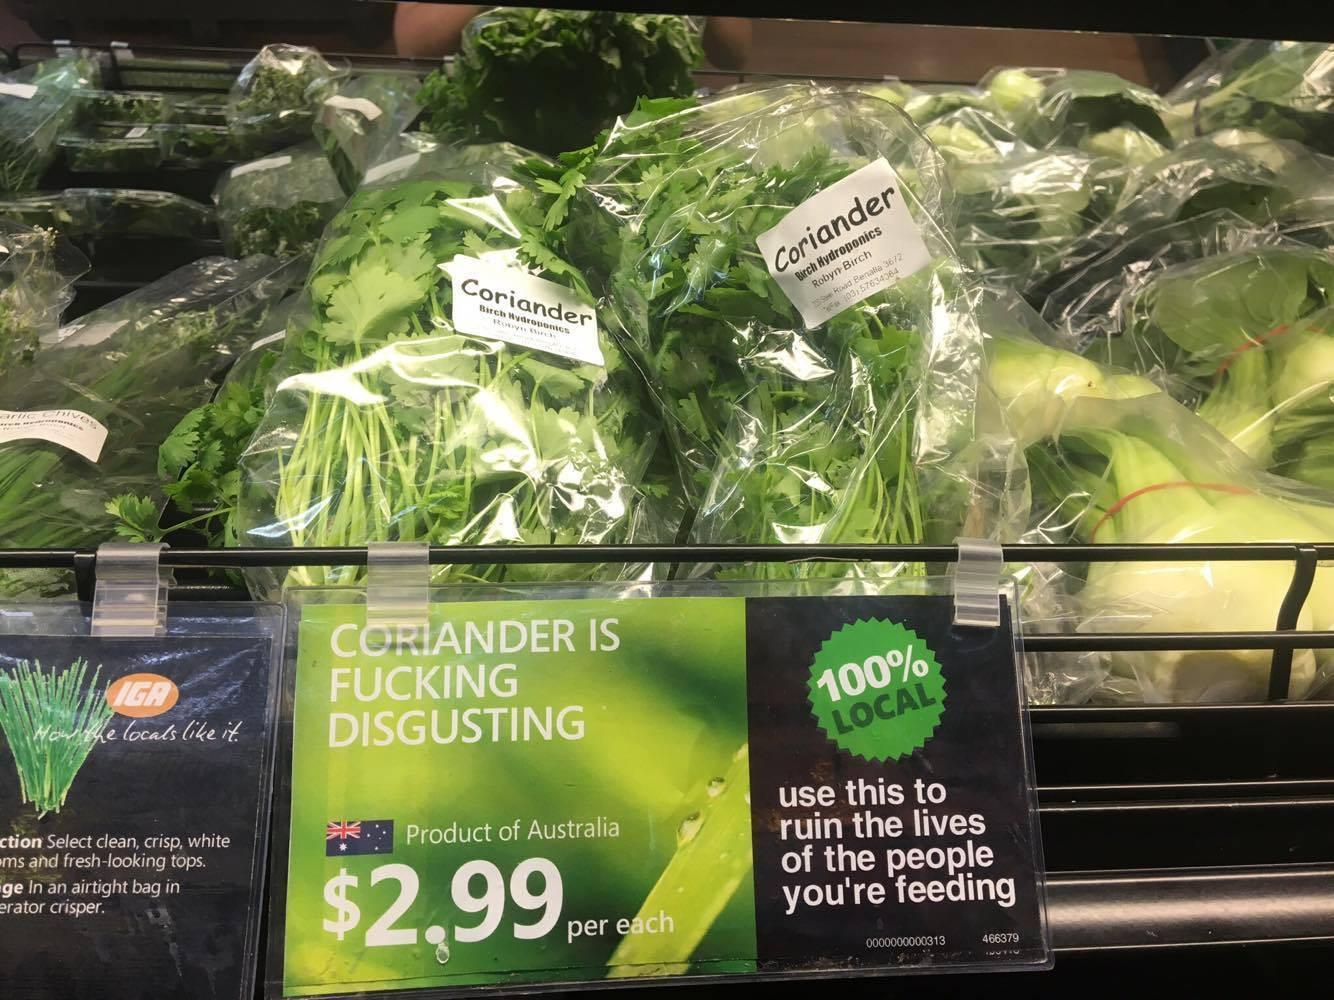 Coriander is what?